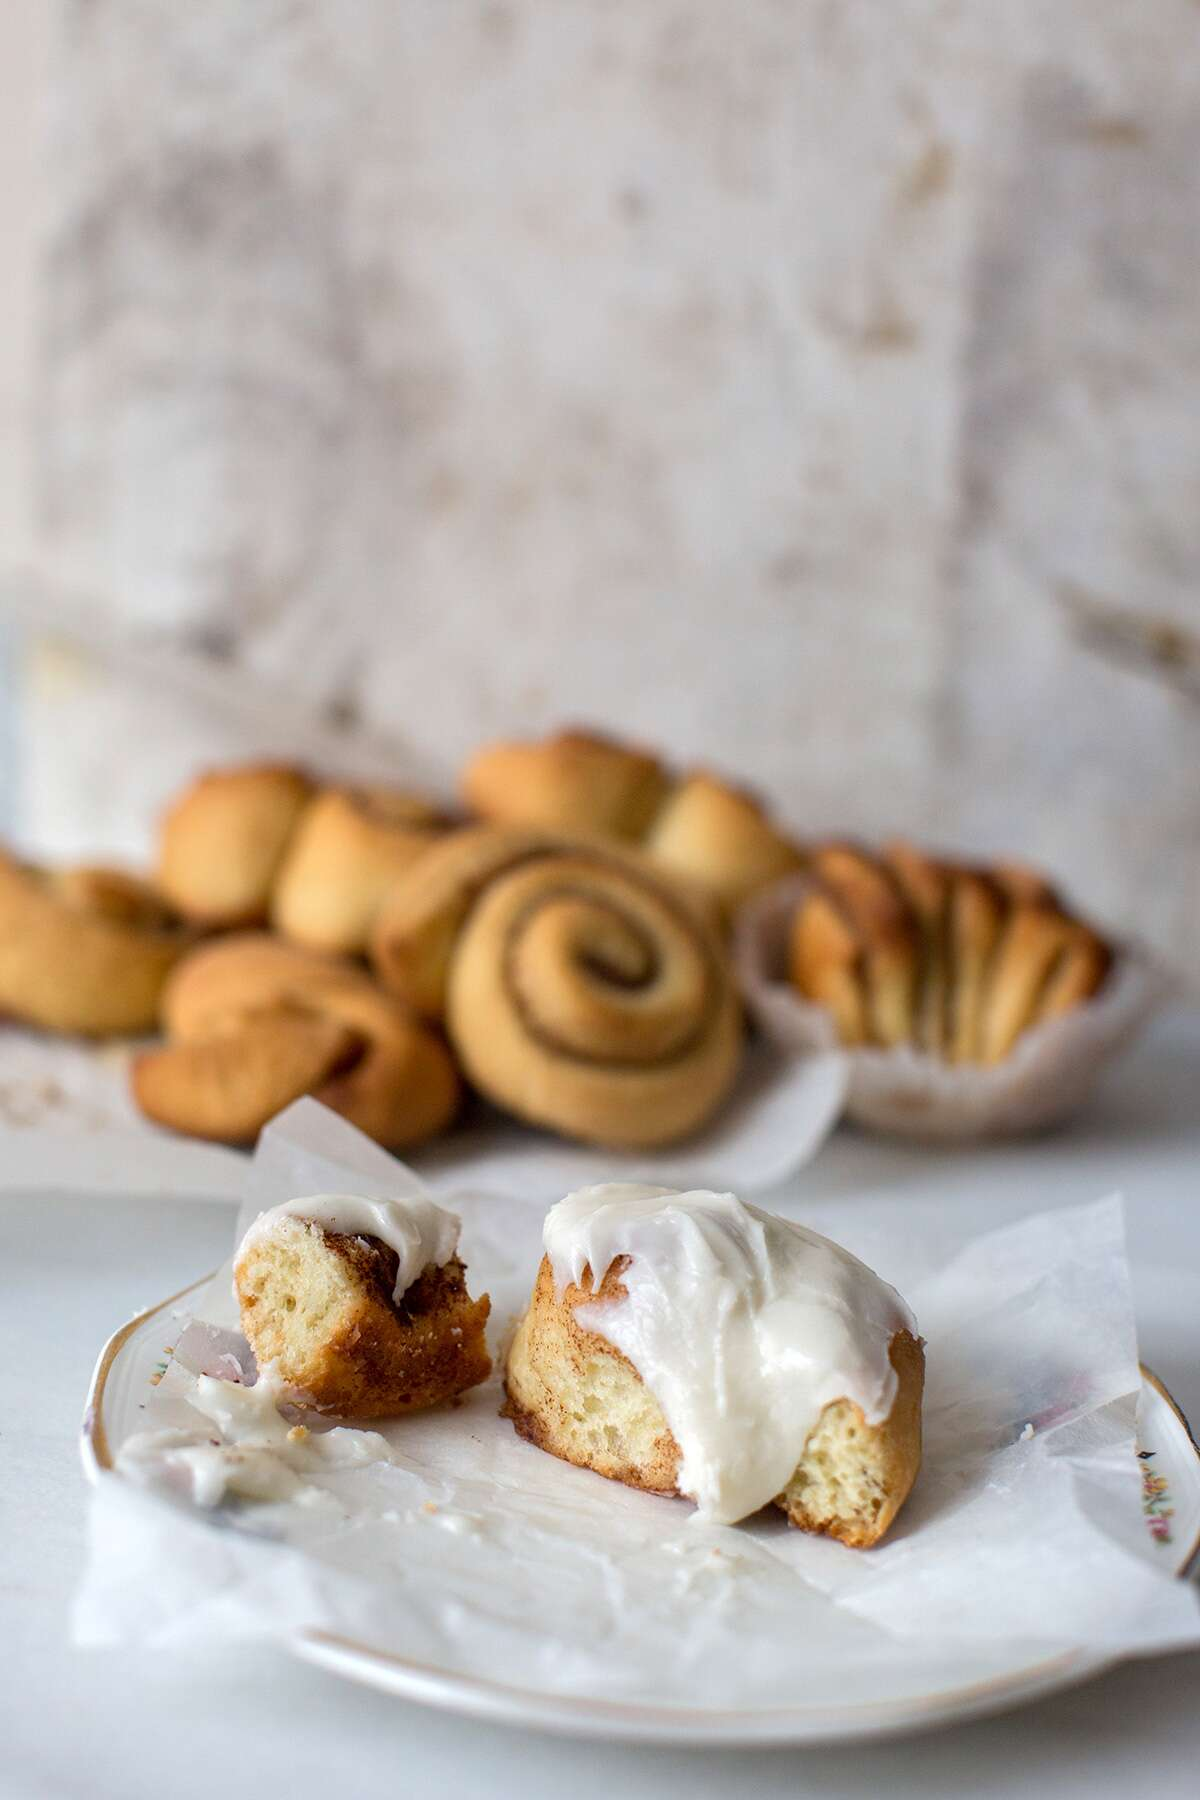 Making cinnamon rolls at home via @kingarthurflour